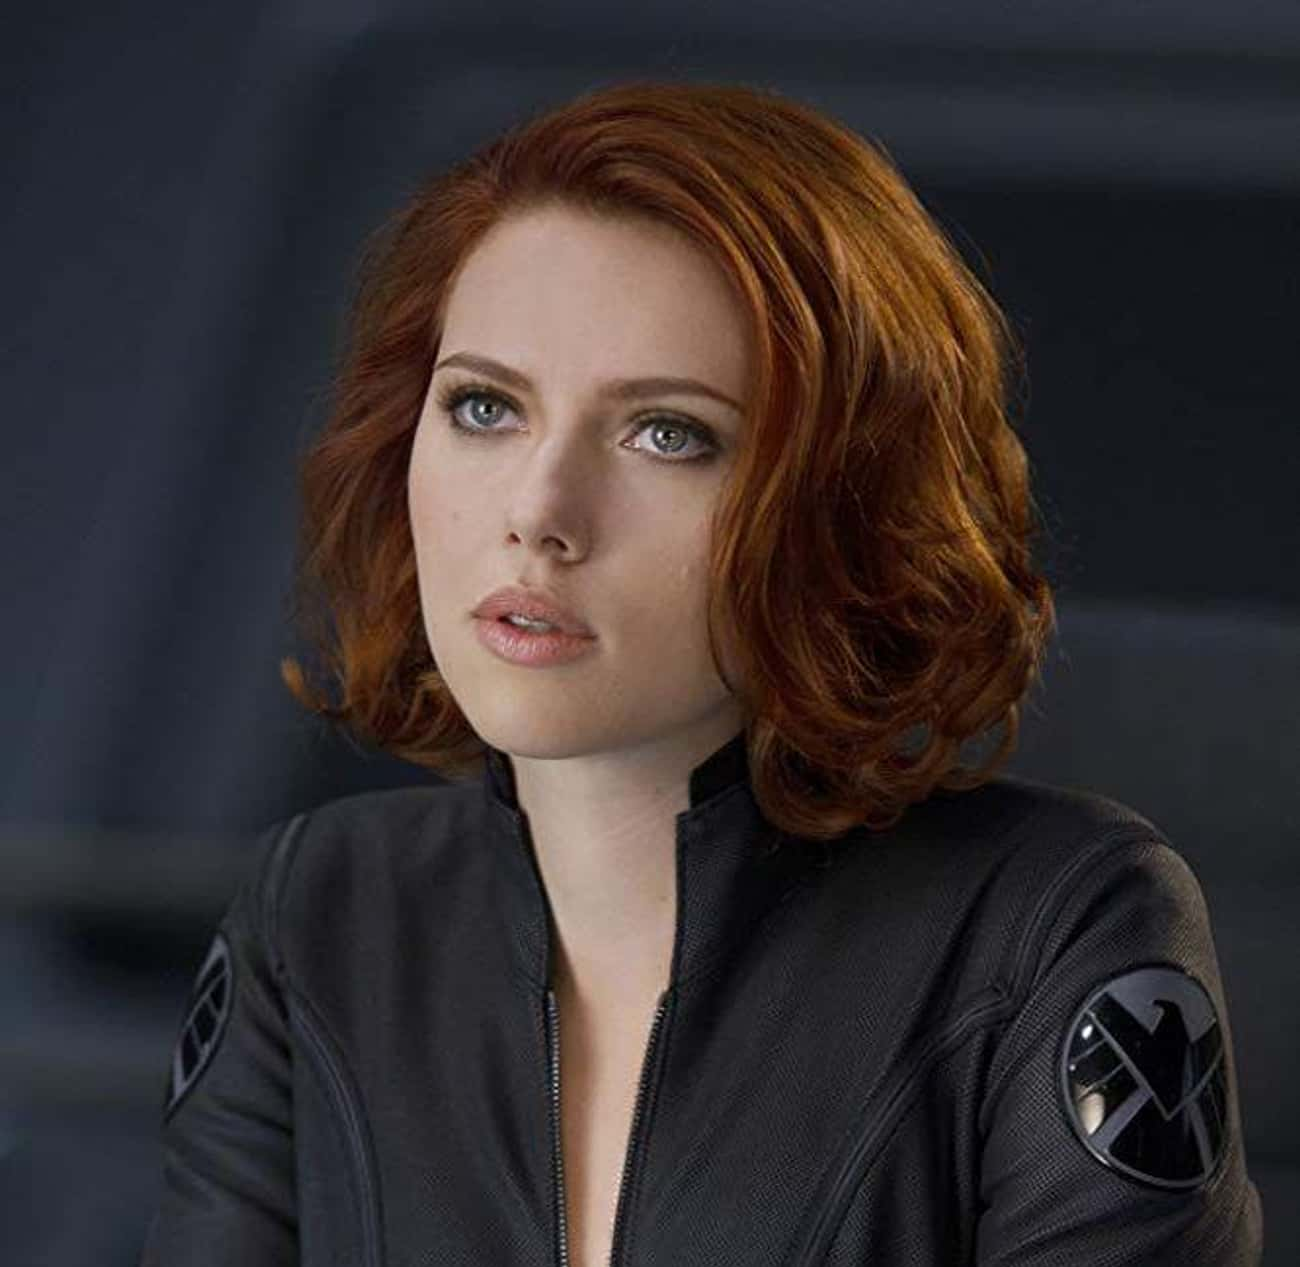 Black Widow - 'Avengers' Series